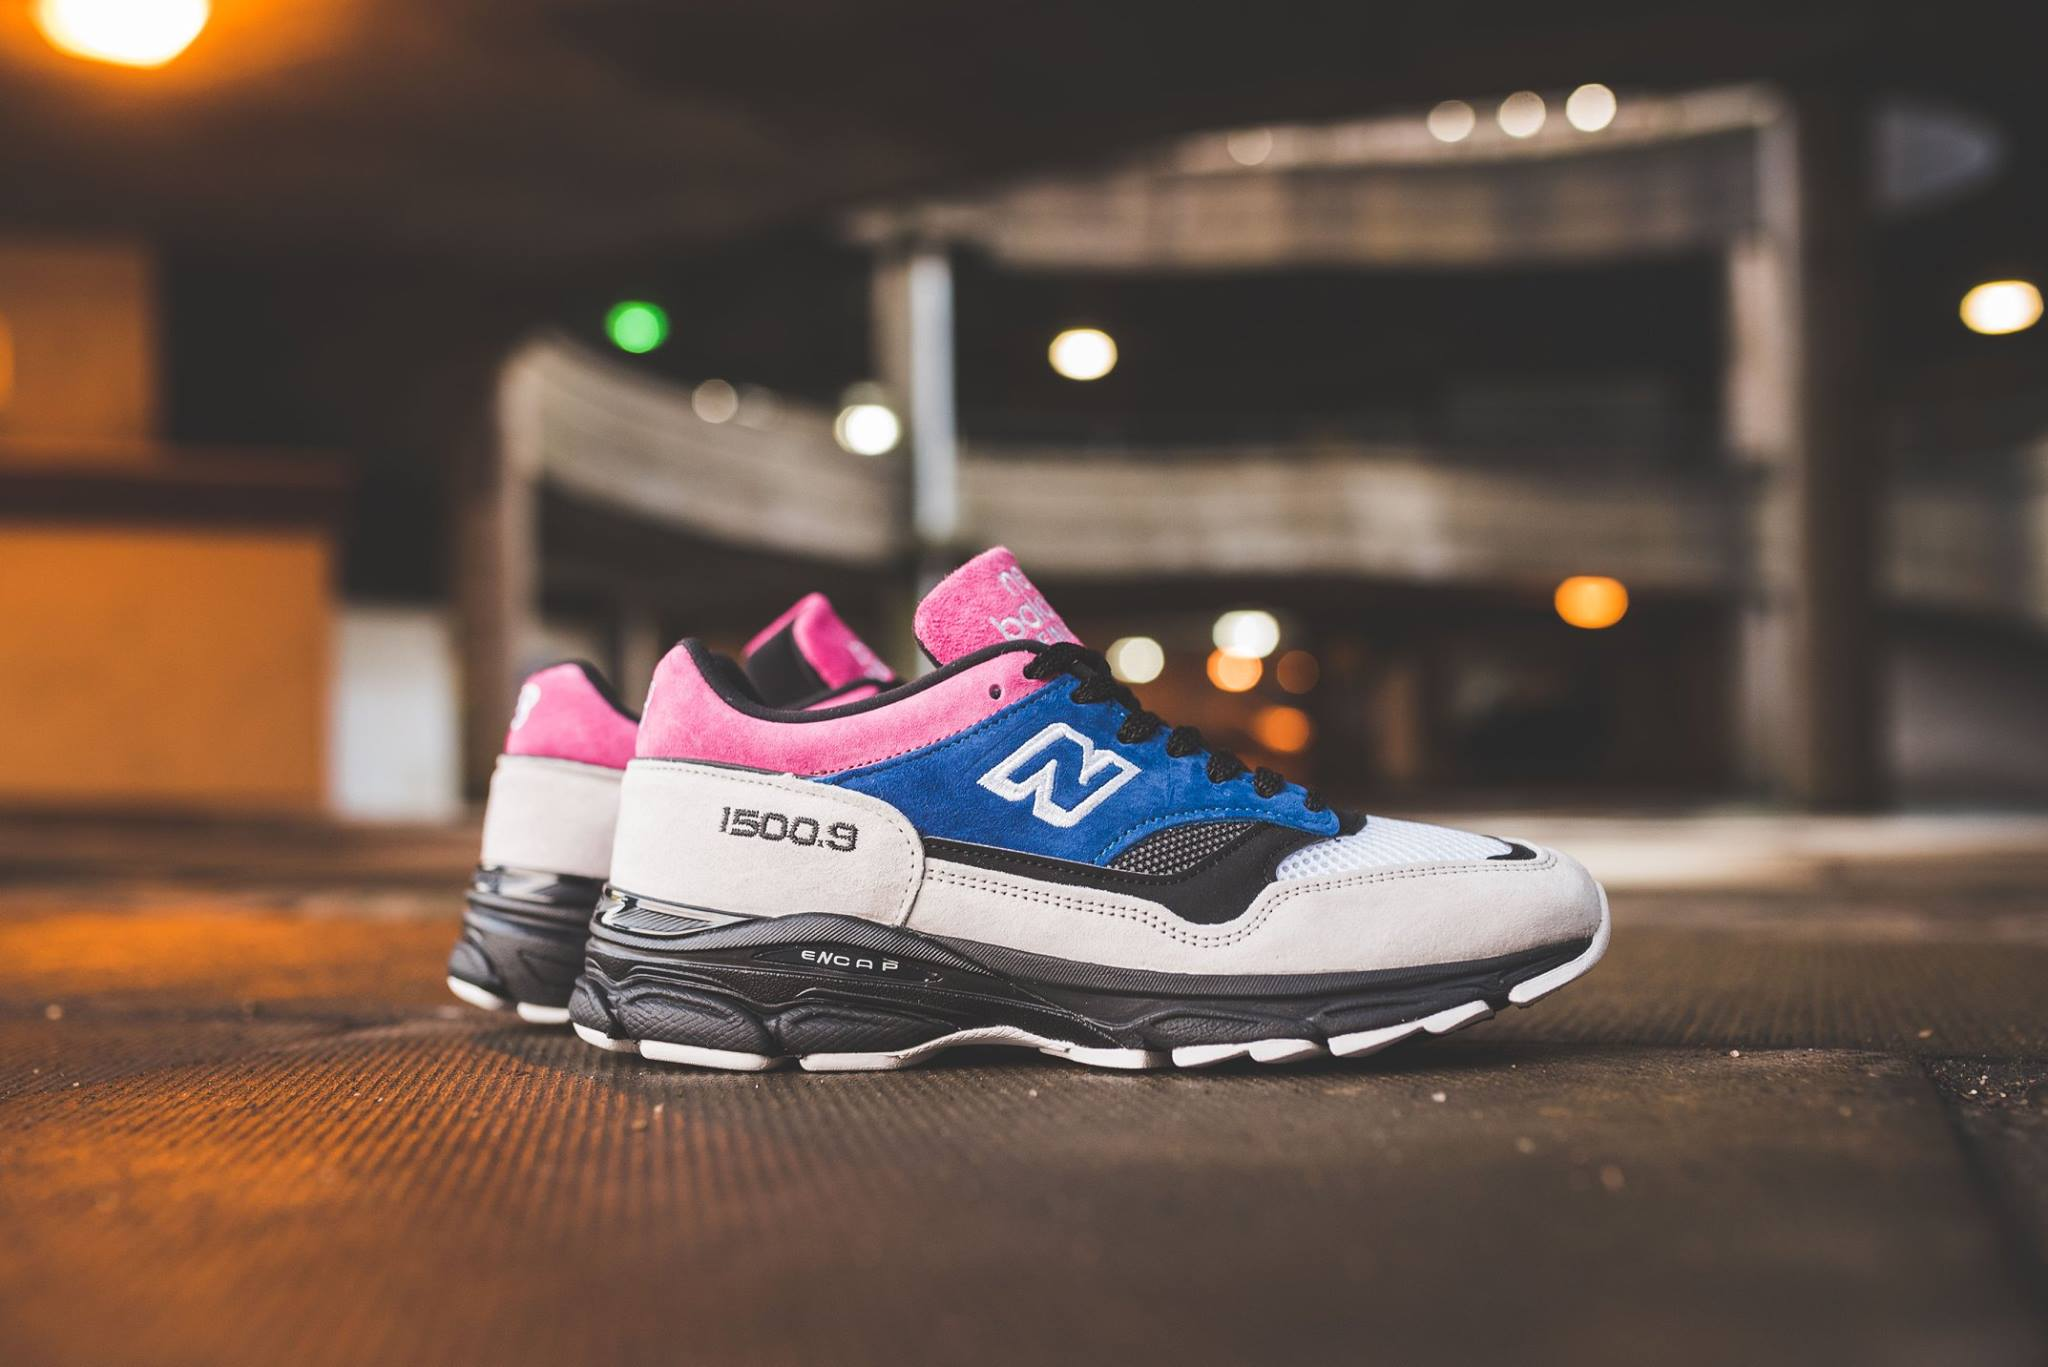 New Balance 1500.9 sneakers clearance best sale the cheapest cheap online free shipping deals buy cheap big sale JO3c5